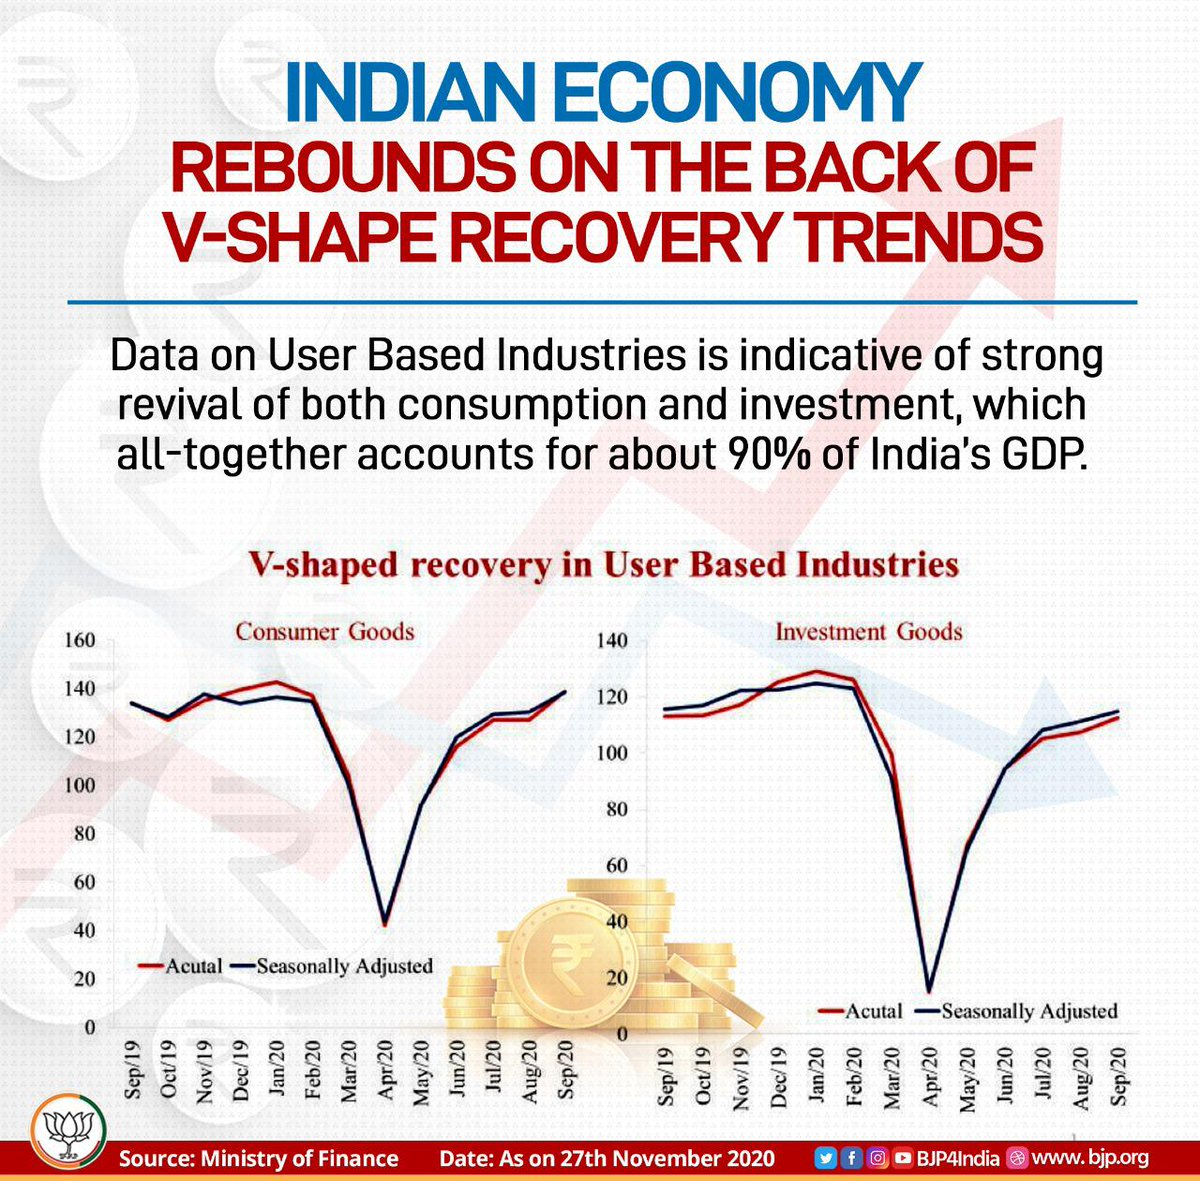 Indian economy rebounds on the back of V-shape recovery trends across the sectors.   V-Shaped recovery in User-Based Industries especially in consumer goods & investment suggests a strong revival of both consumption and investment, which accounts for 90% of GDP.  #EconomyRebounds